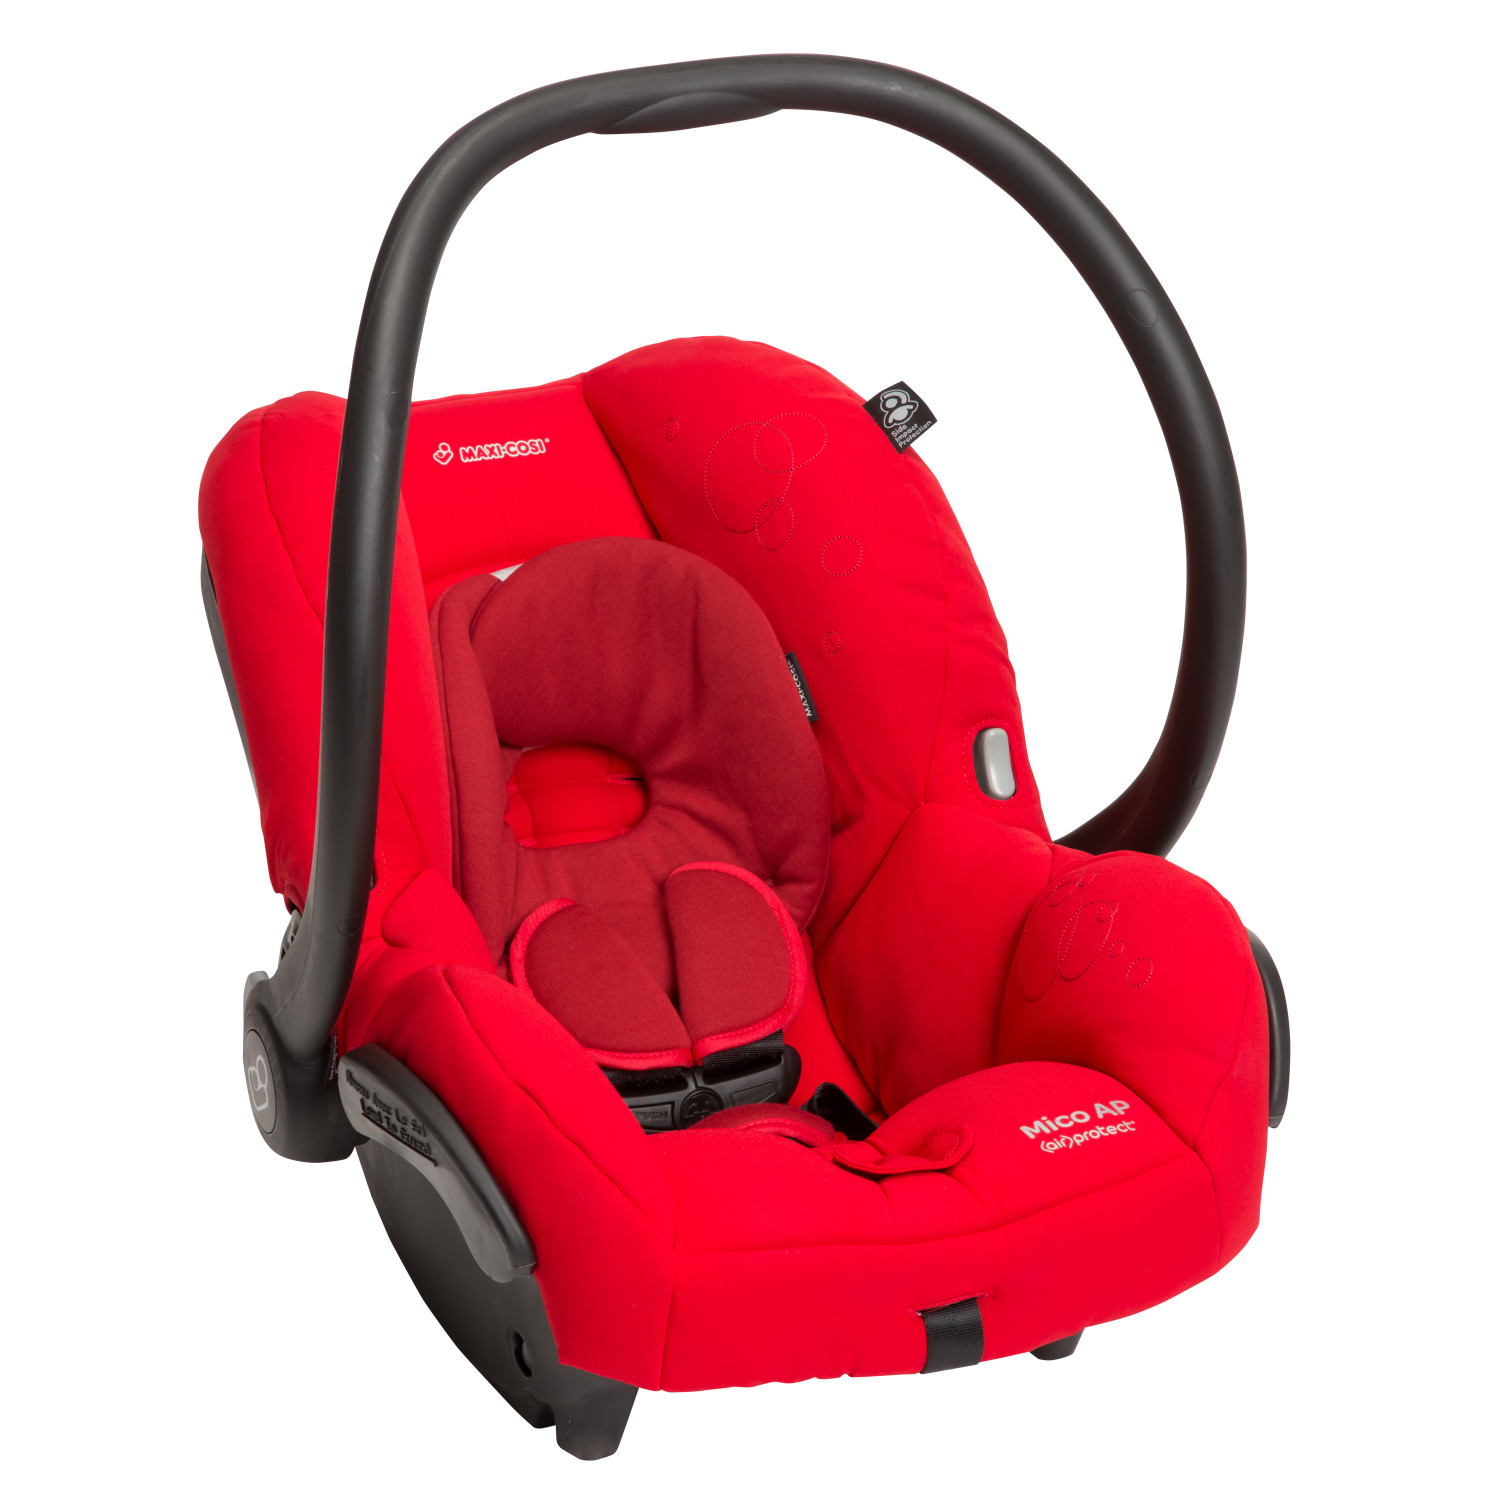 maxi cosi mico ap infant car seat ebay. Black Bedroom Furniture Sets. Home Design Ideas